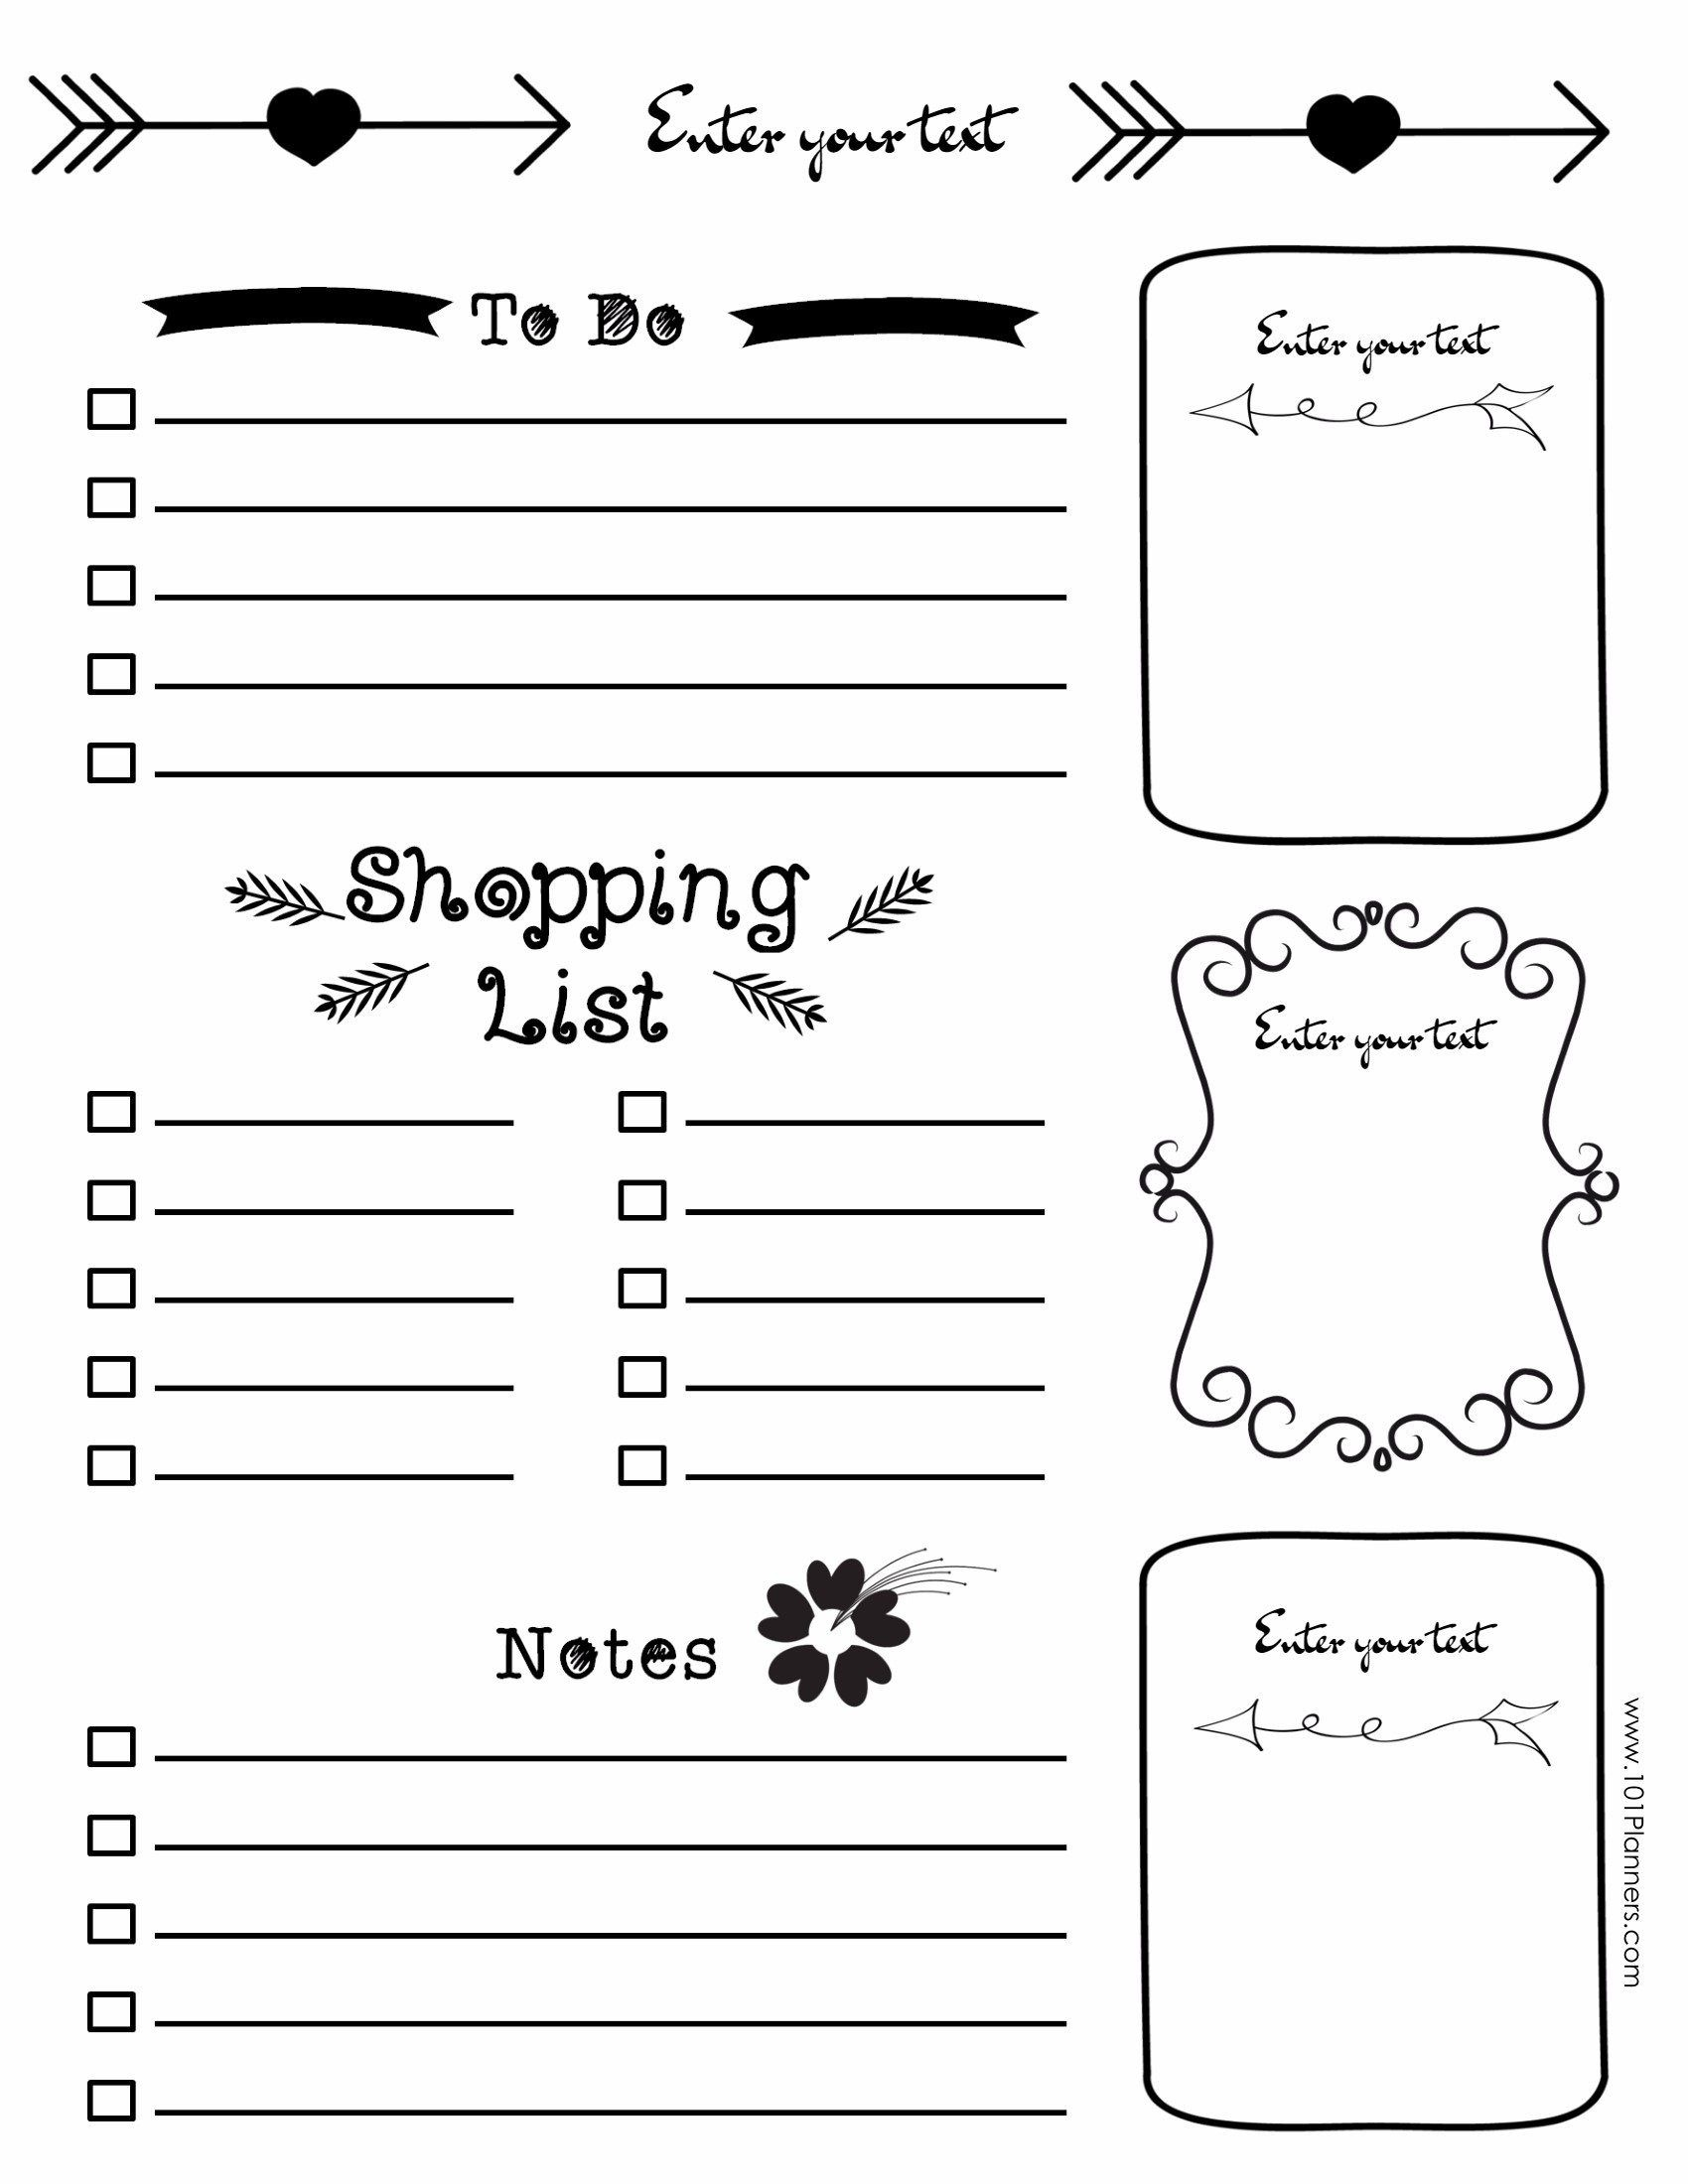 Free Bullet Journal Printables | Bullet Journal | Bullet Journal - Free Printable Journal Templates